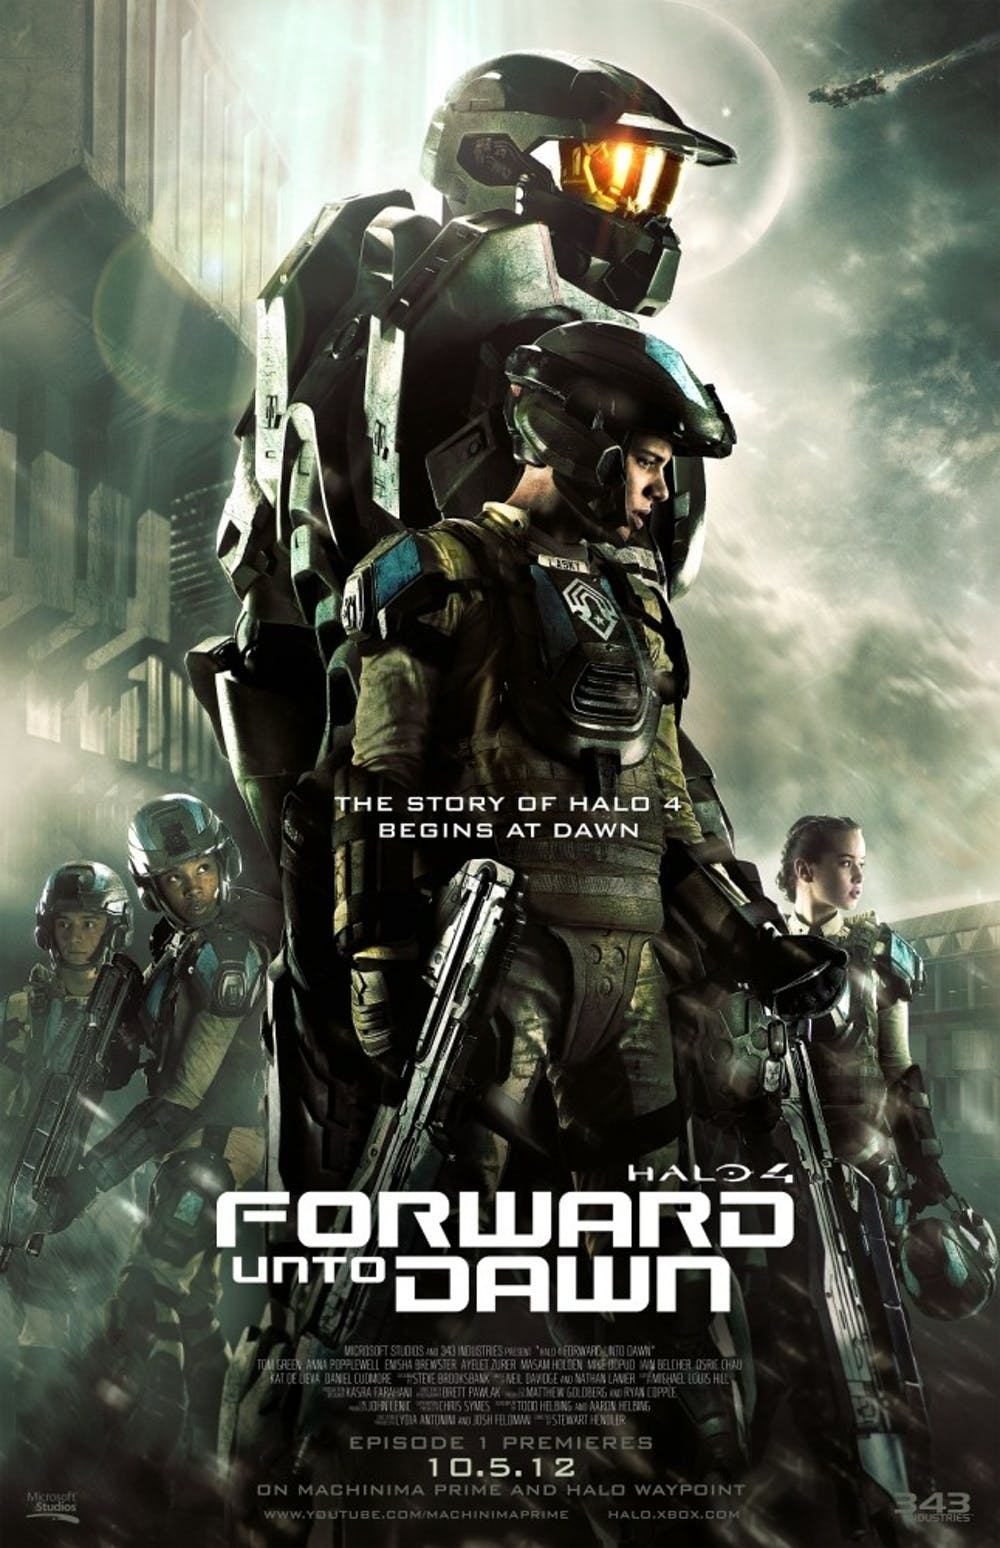 Halo 4 film a must-see